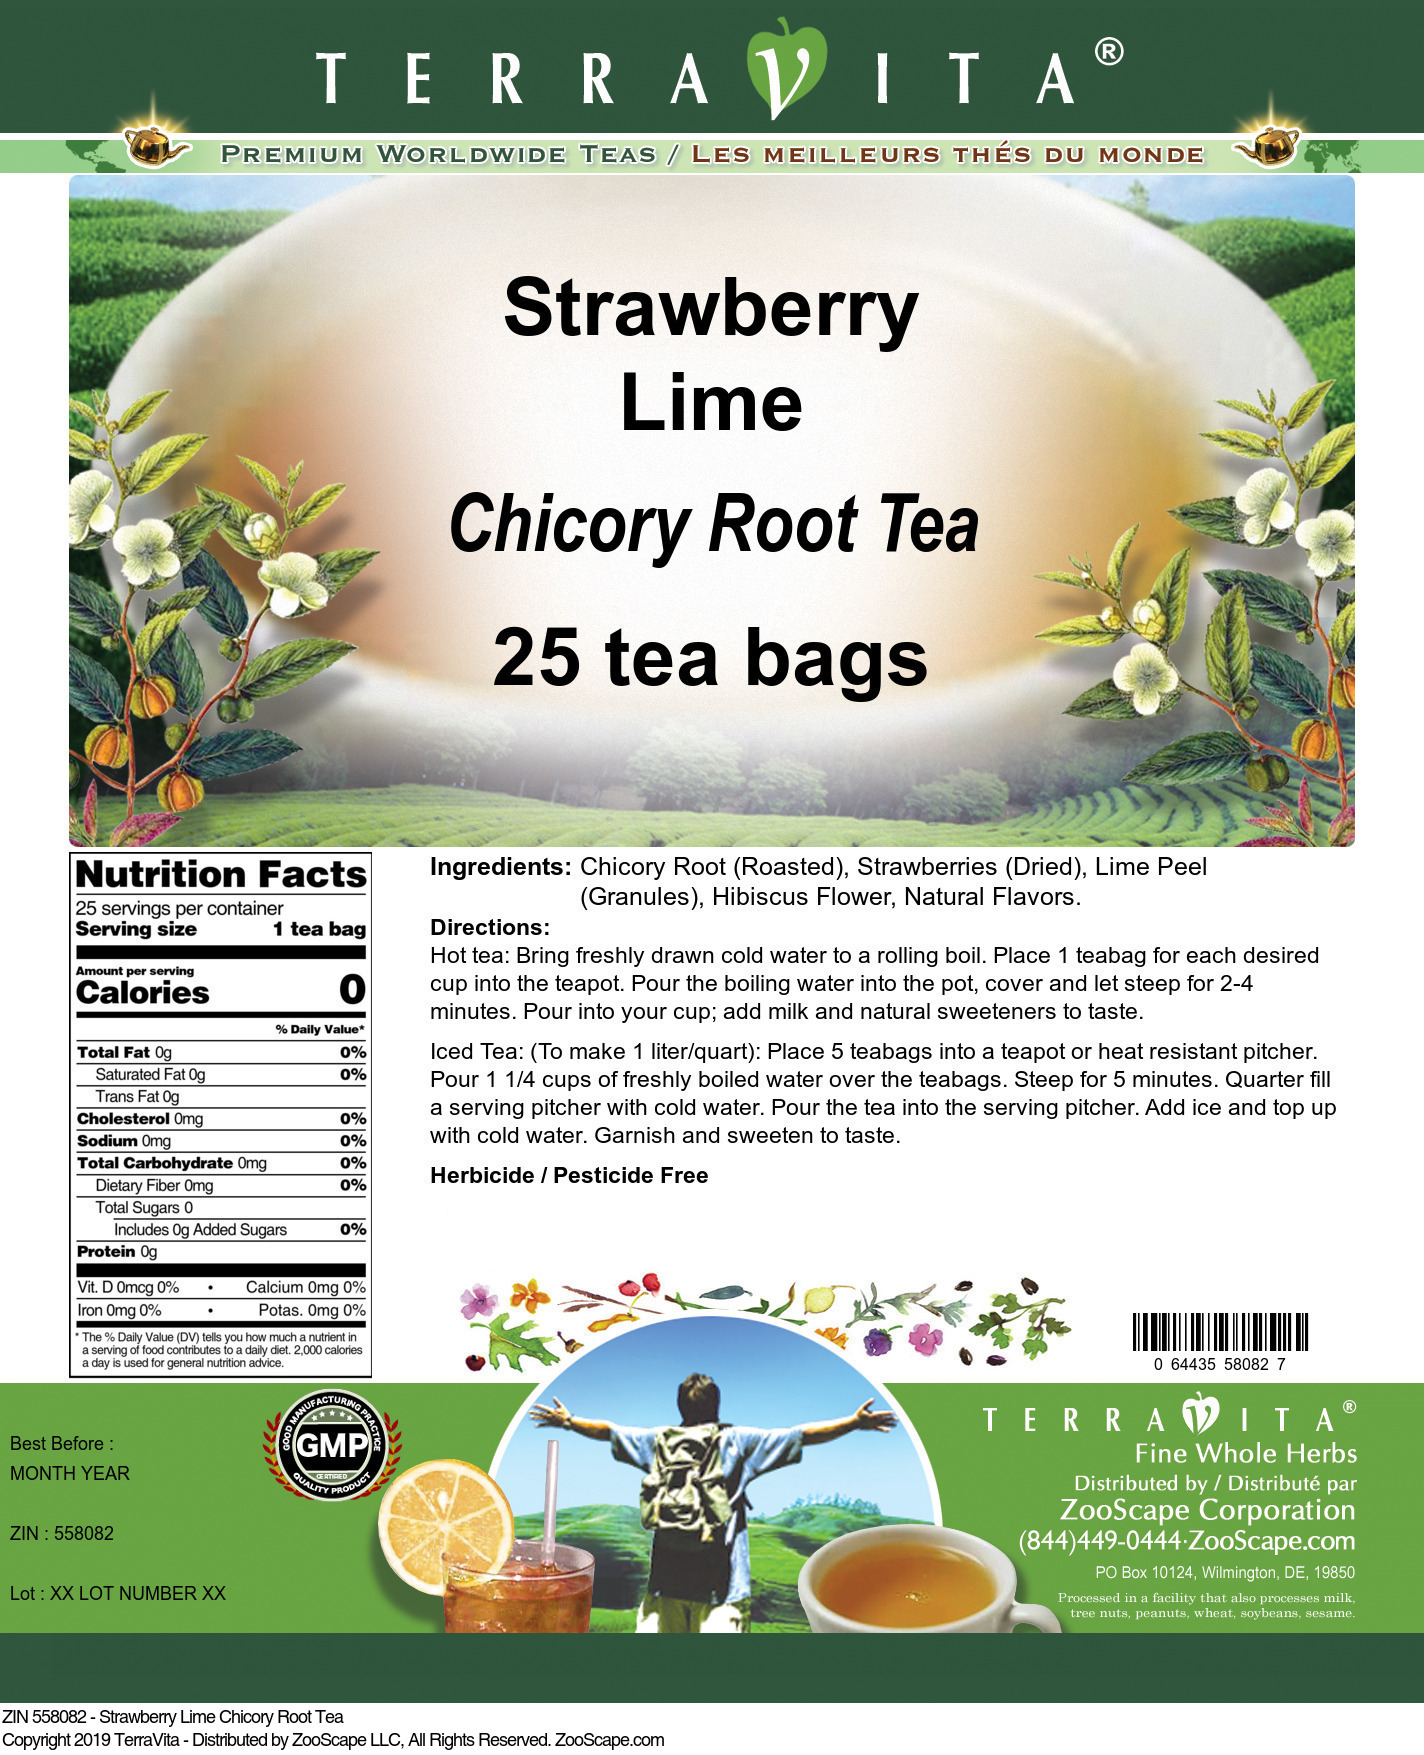 Strawberry Lime Chicory Root Tea